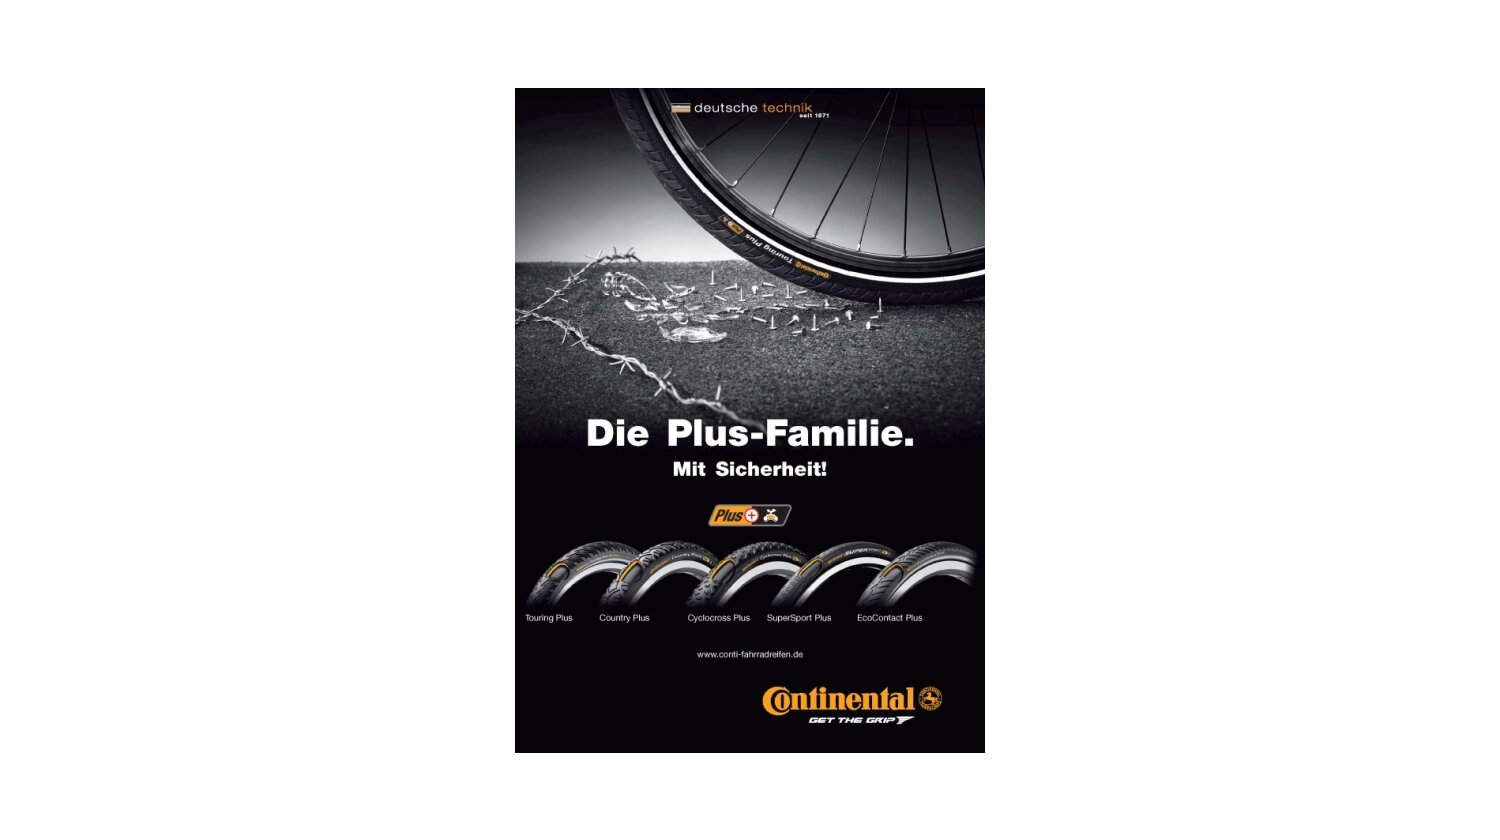 Continental SuperSport Plus 28 Drahtreifen 25-622